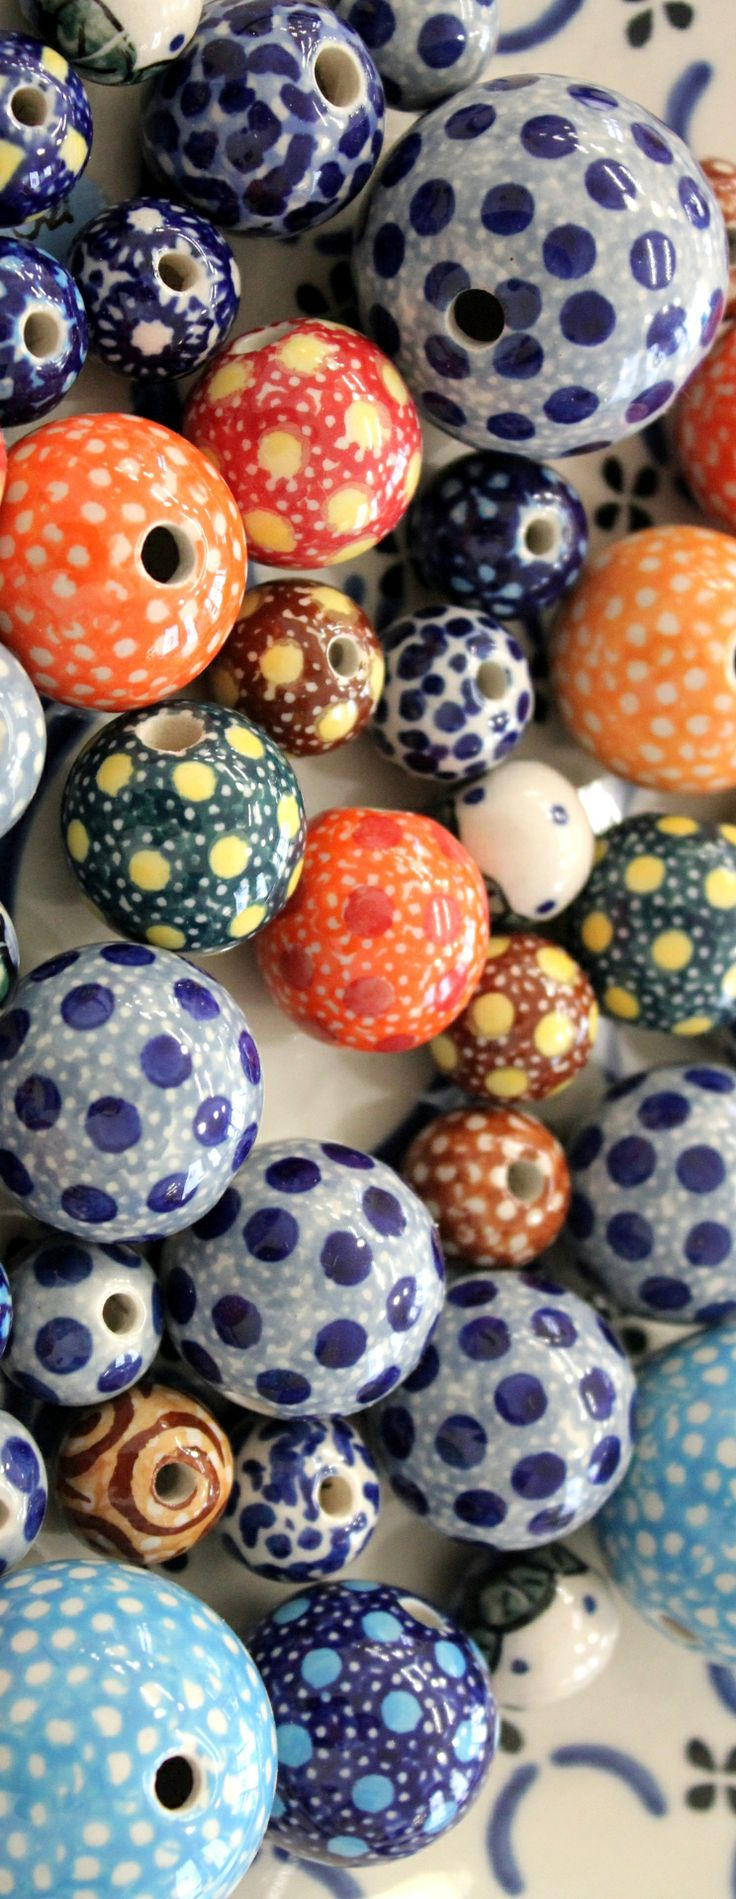 Beads by Polish pottery